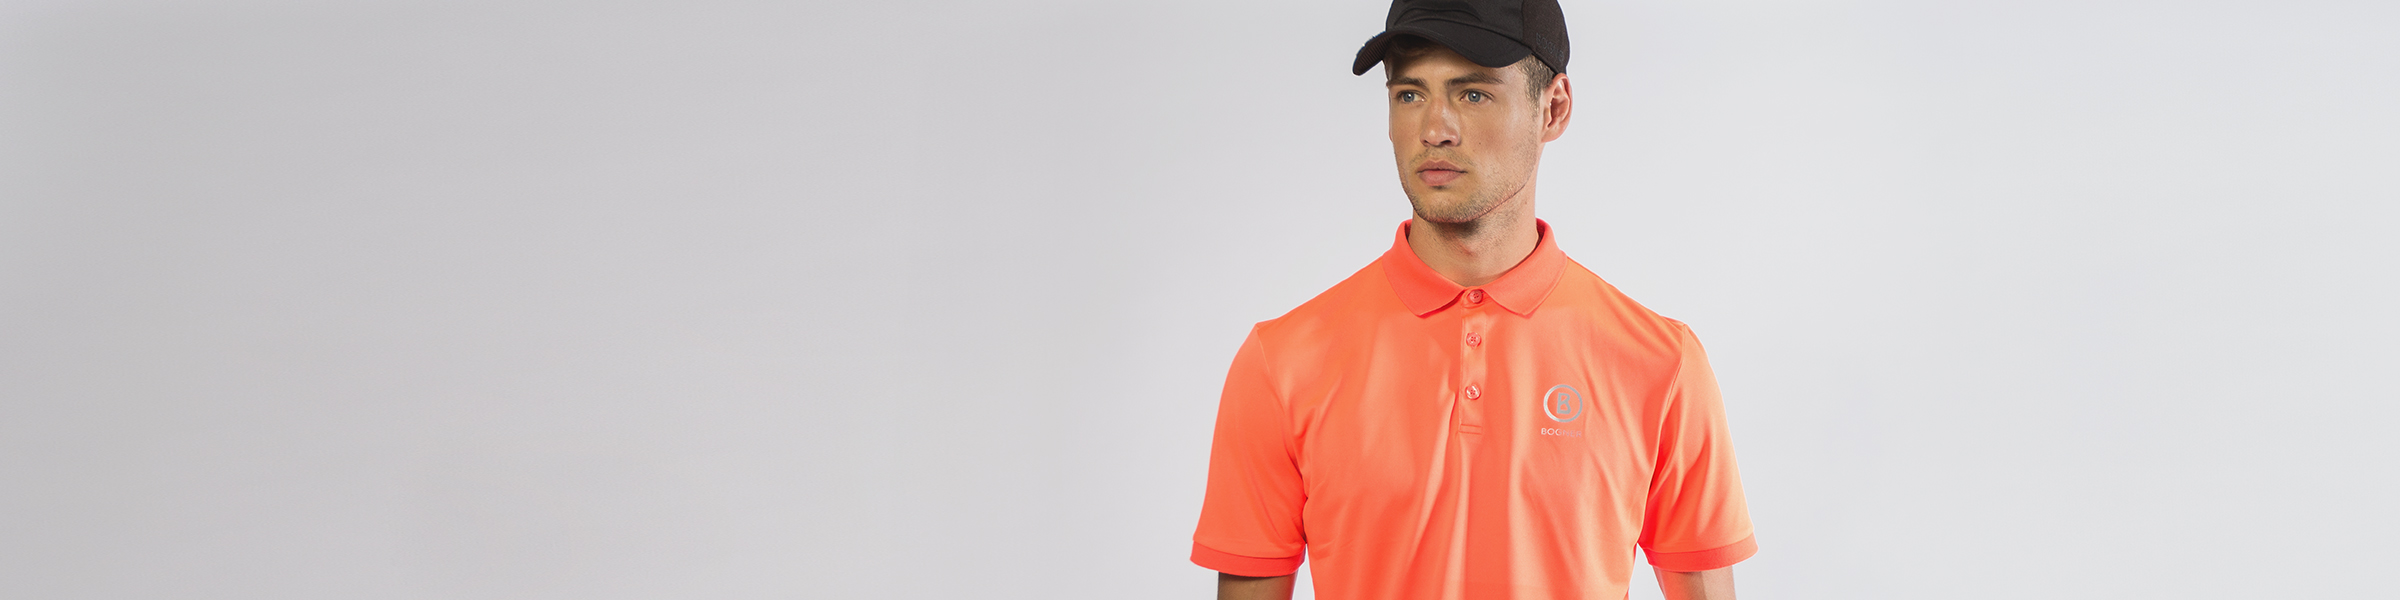 Men's Golf Wear